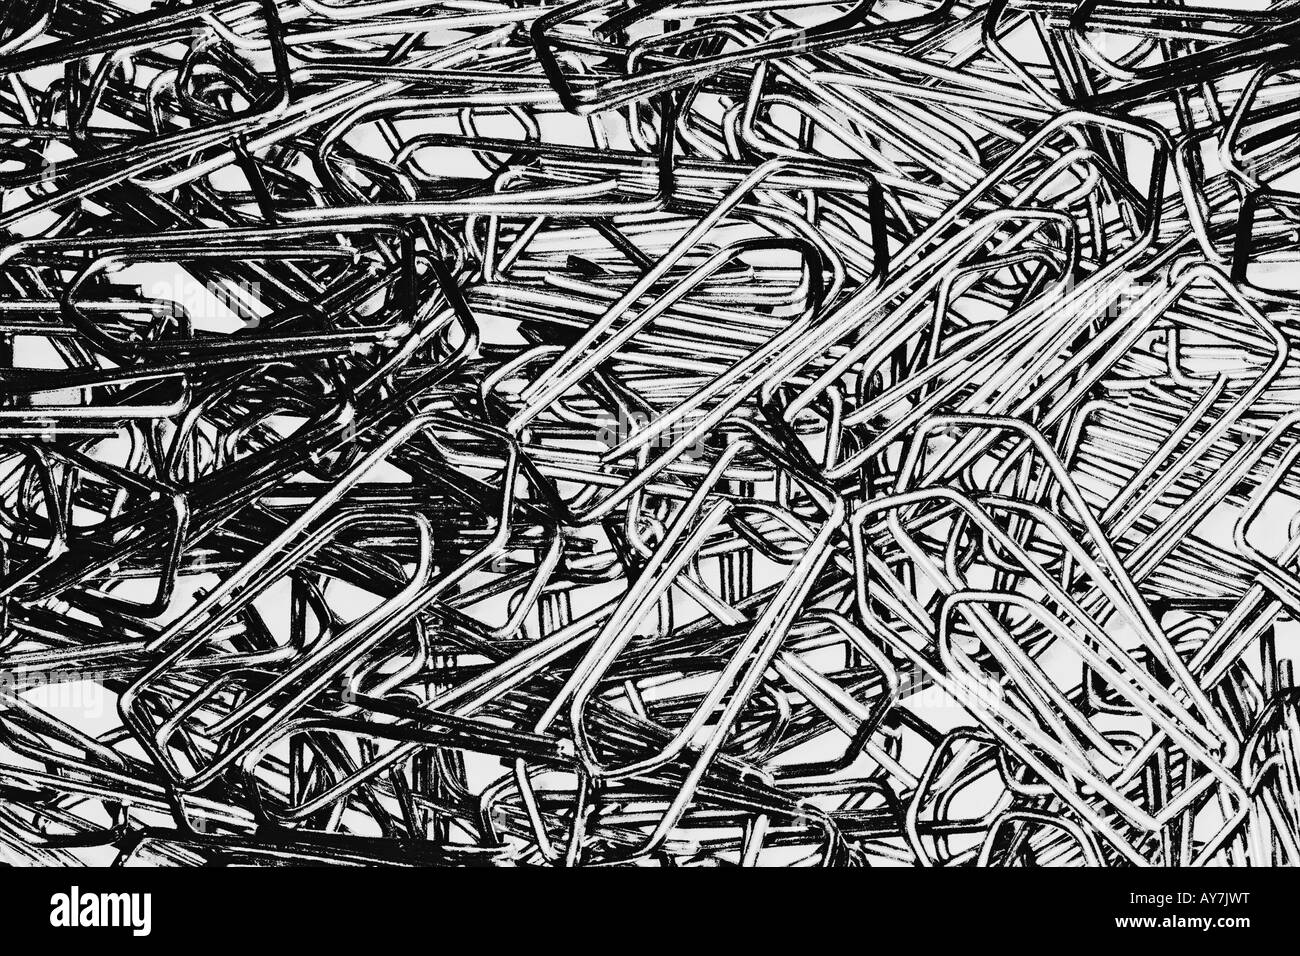 Large Group Of Paper Clips Stock Photo